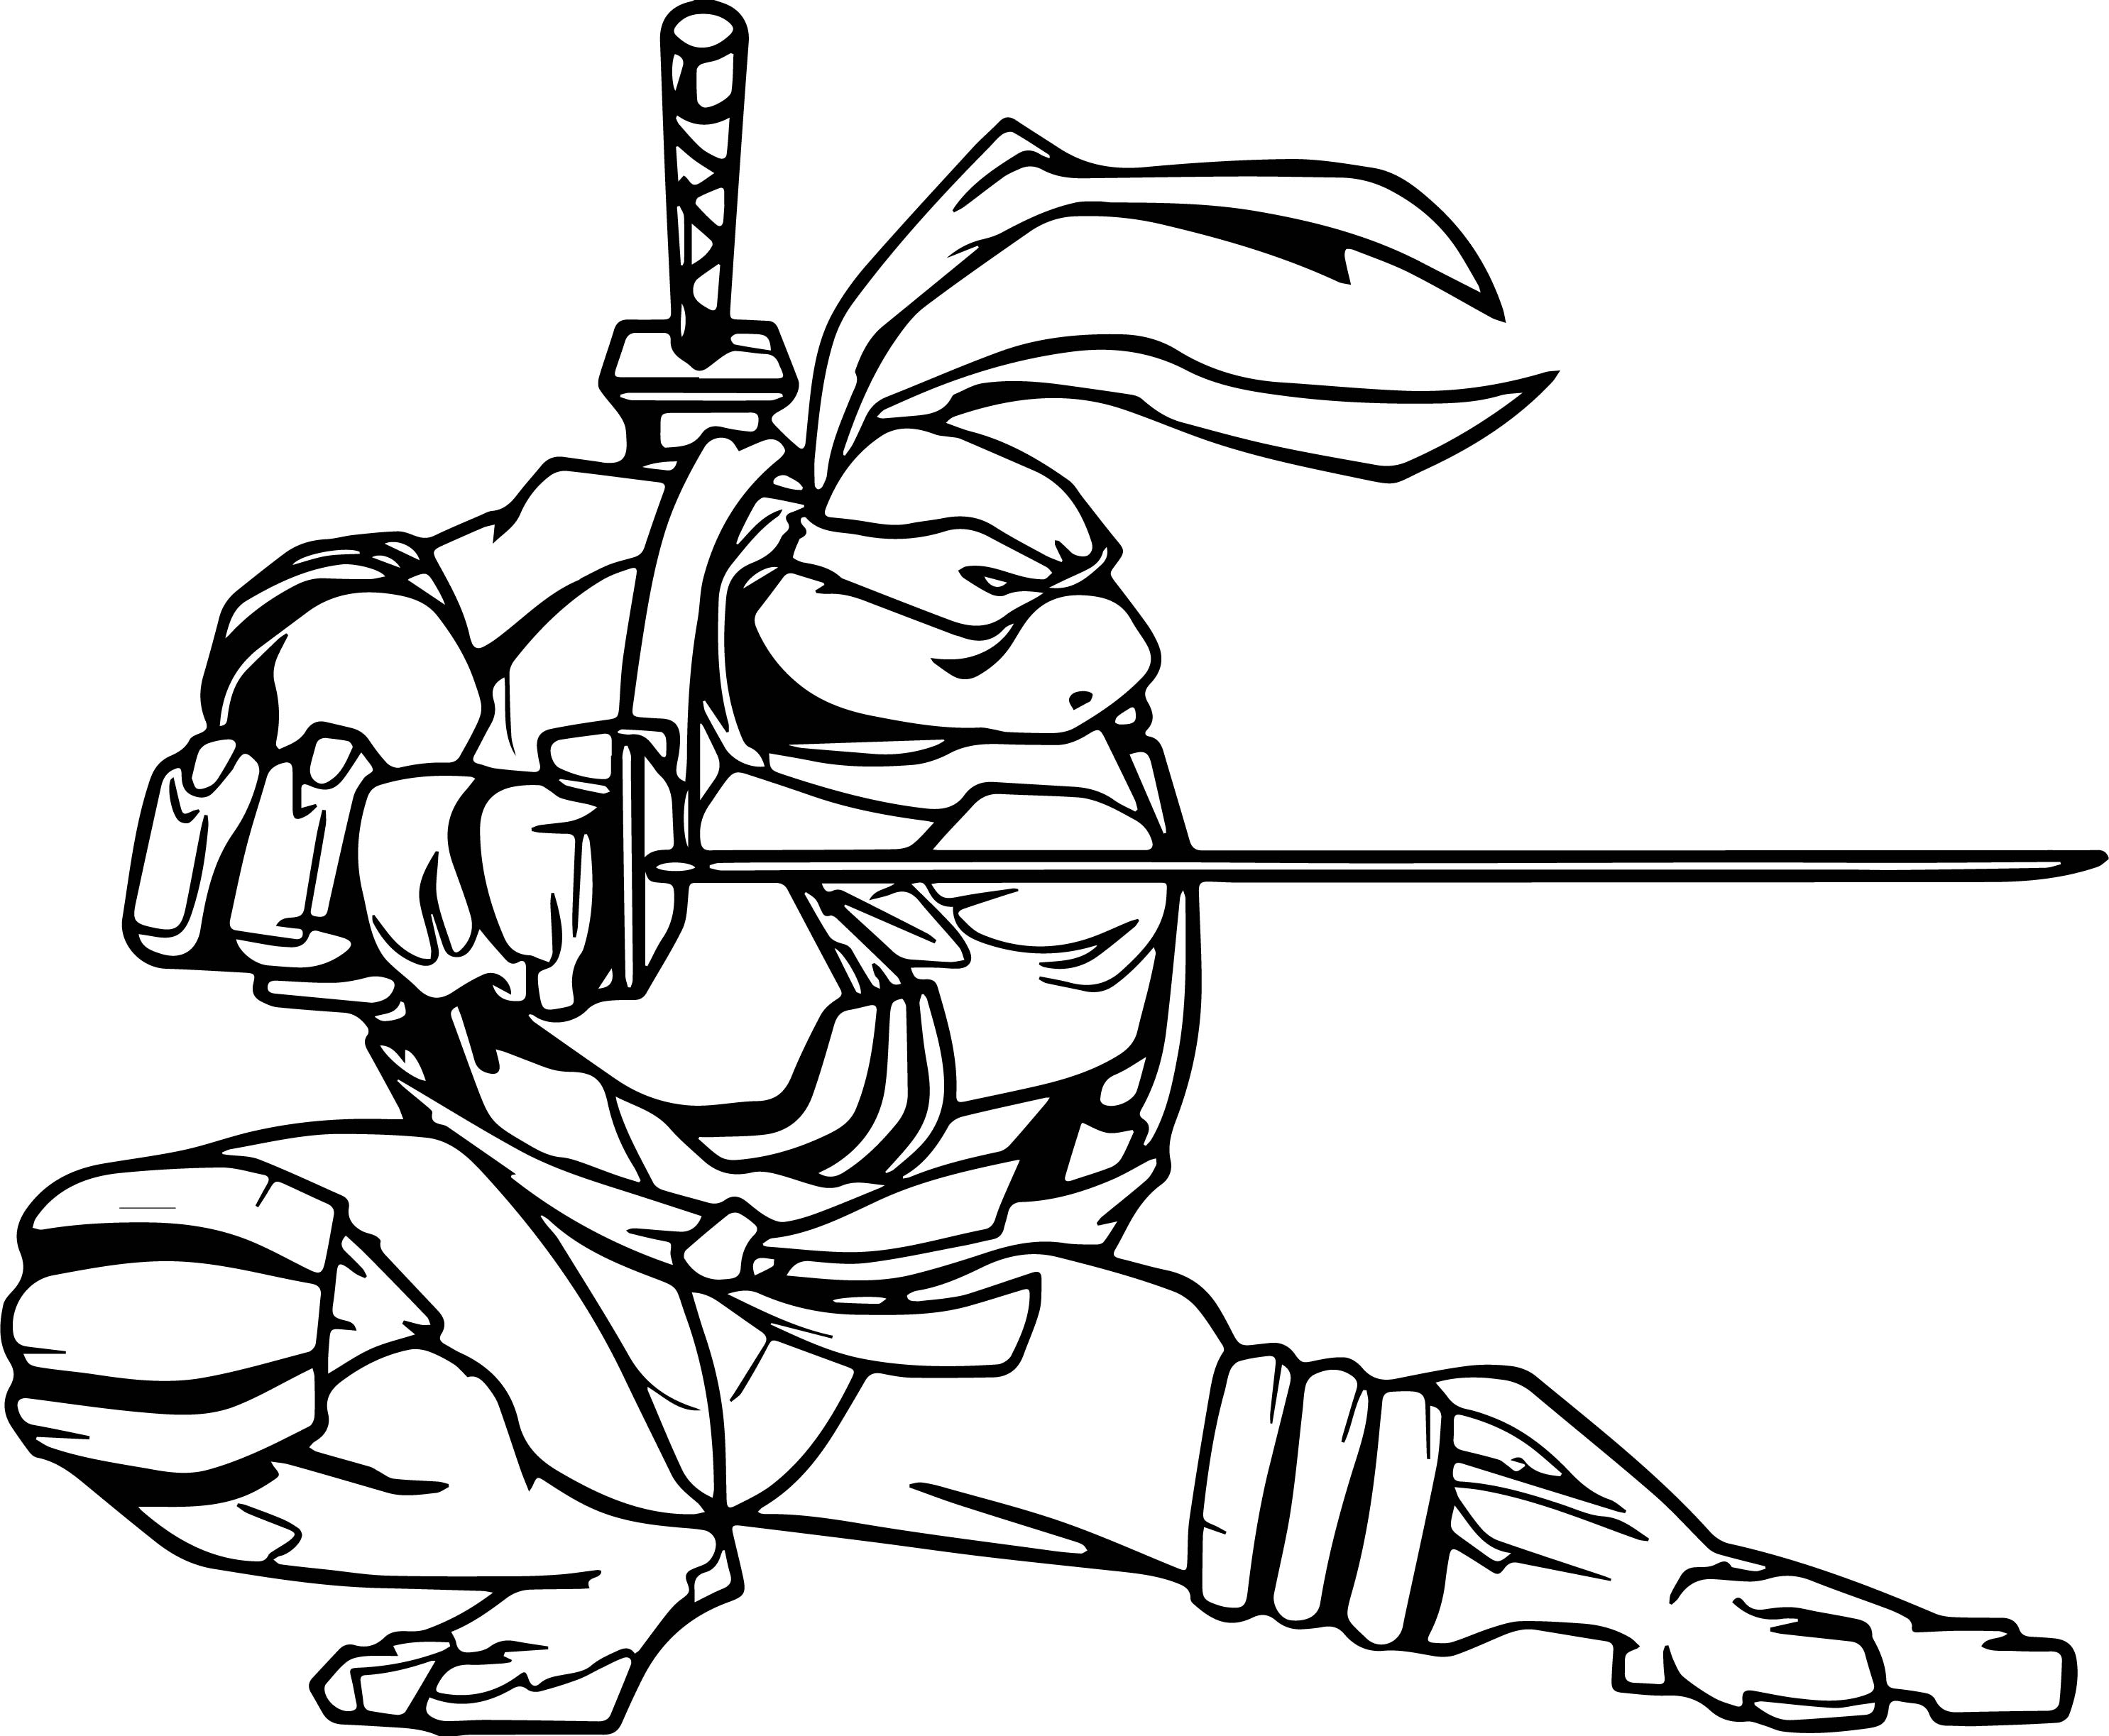 Coloring Pages Lego Ninja Turtles  Coloring Pages